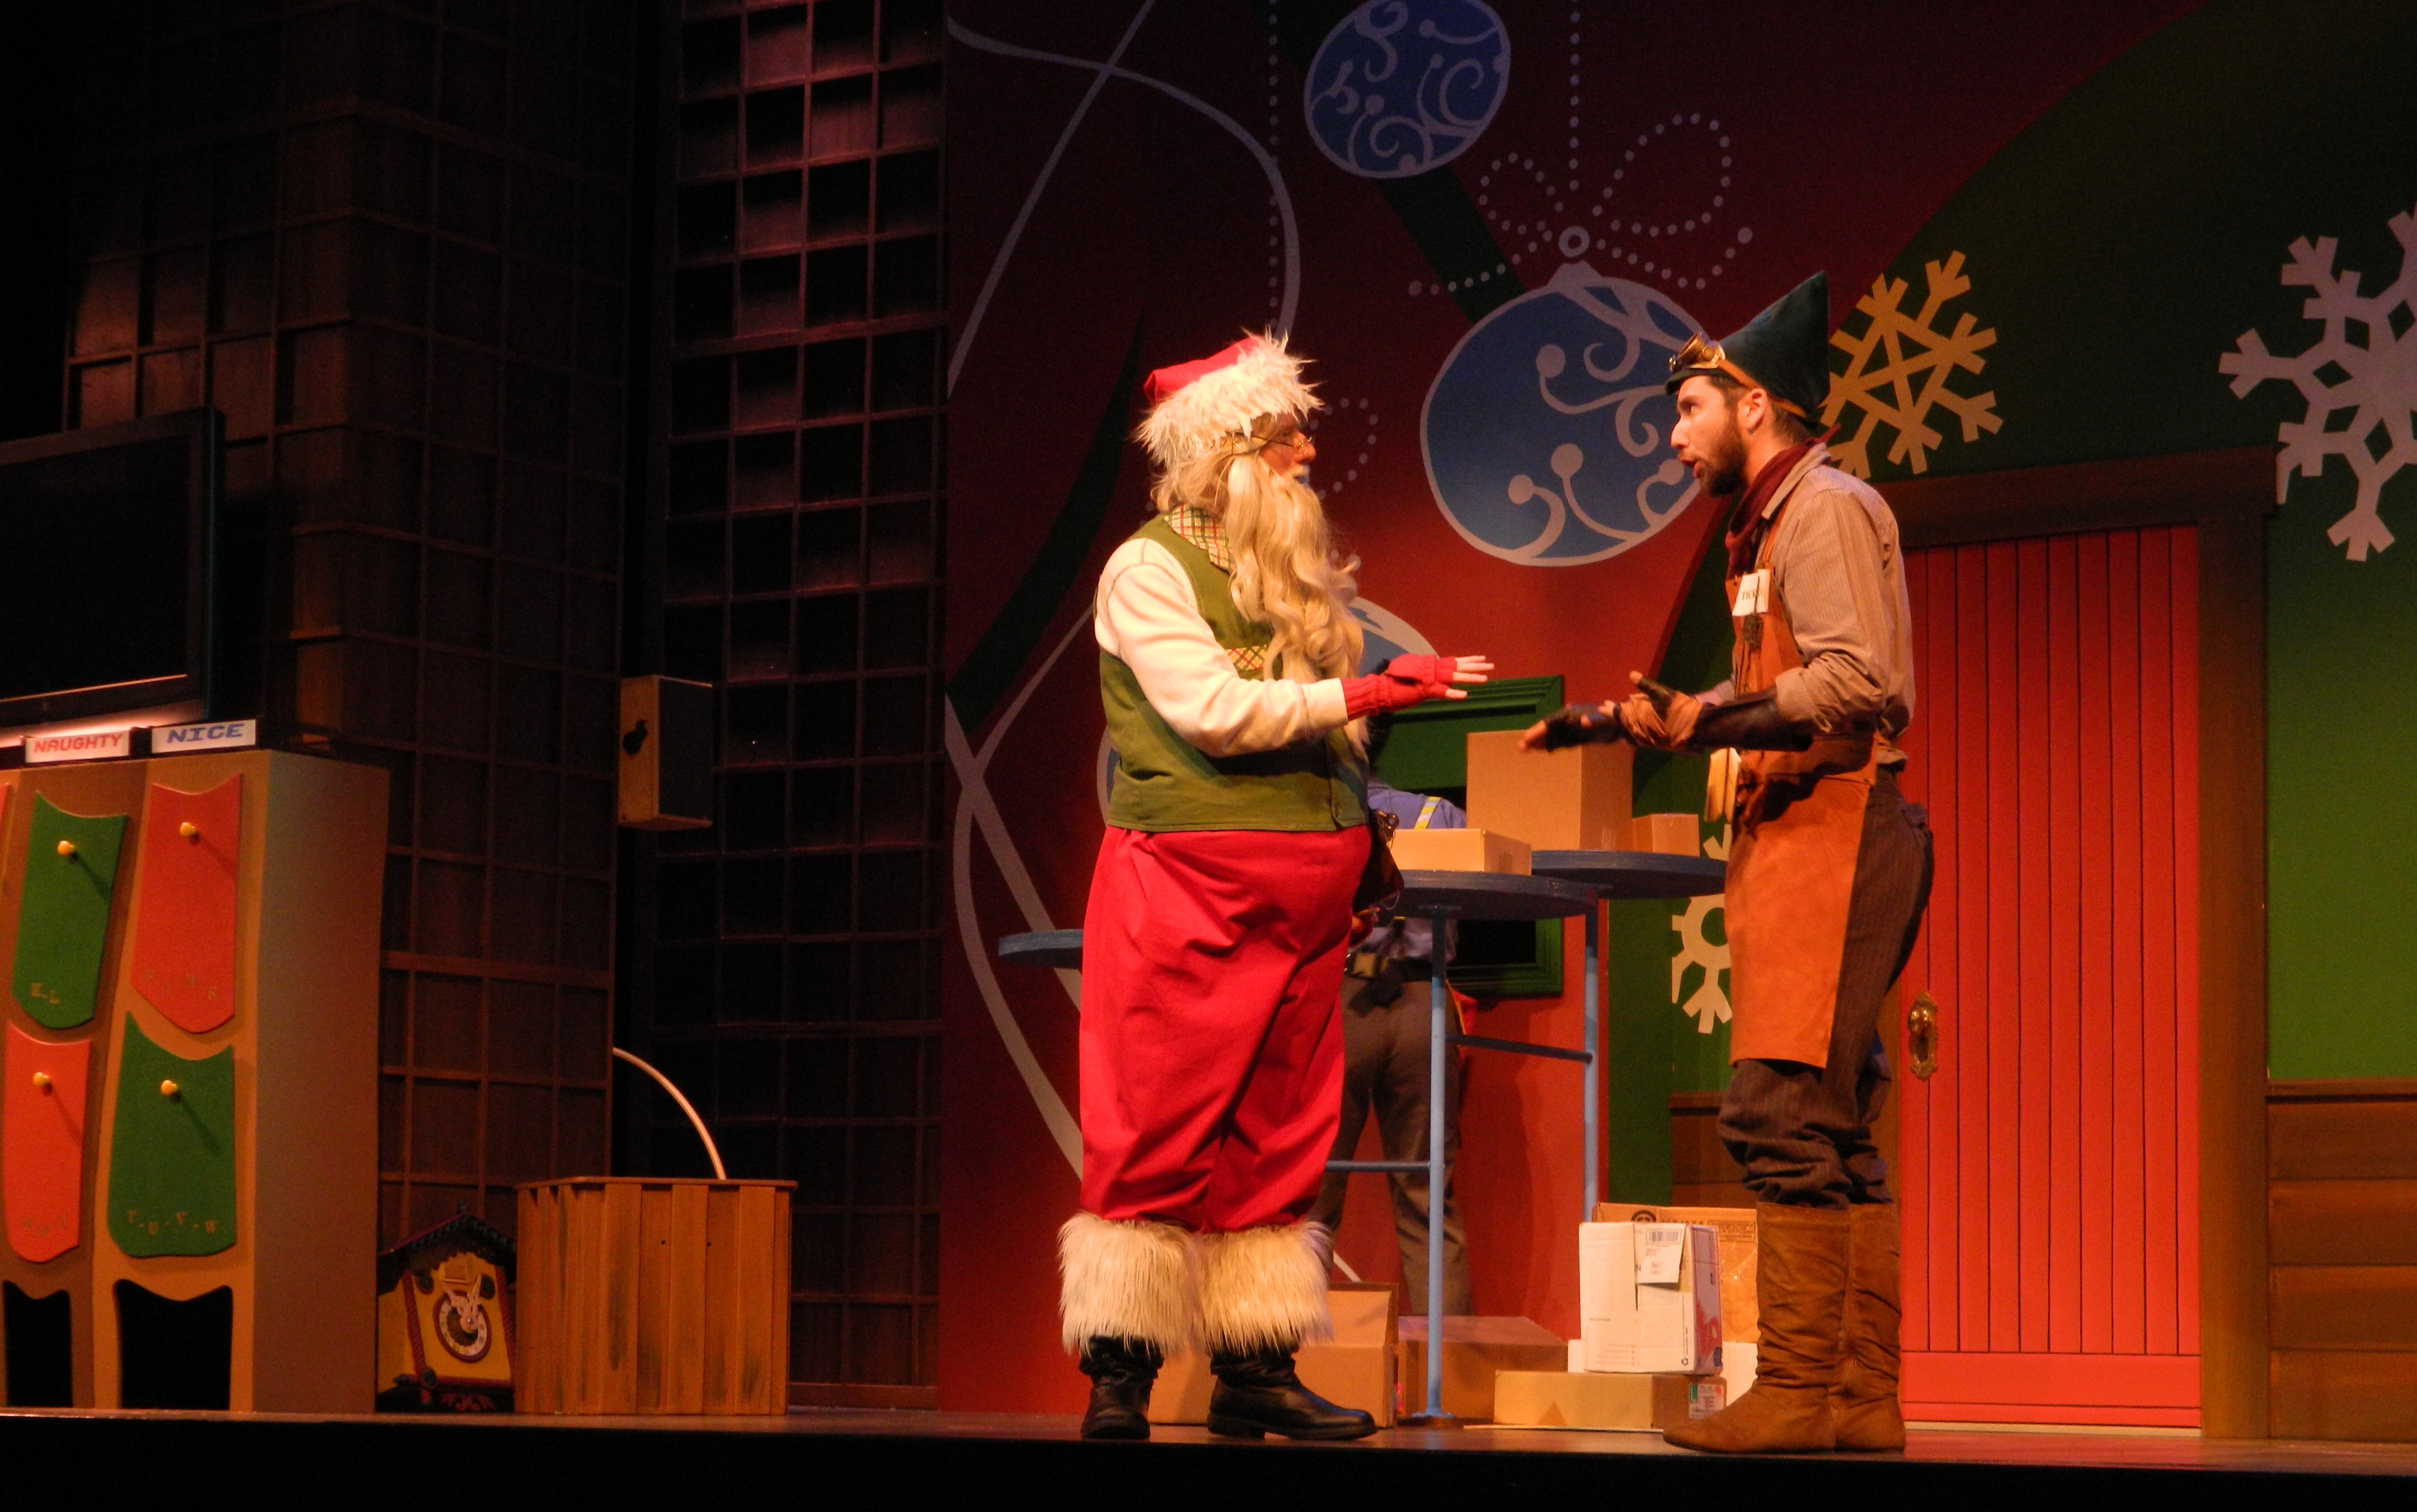 Tick Tock consults with Santa